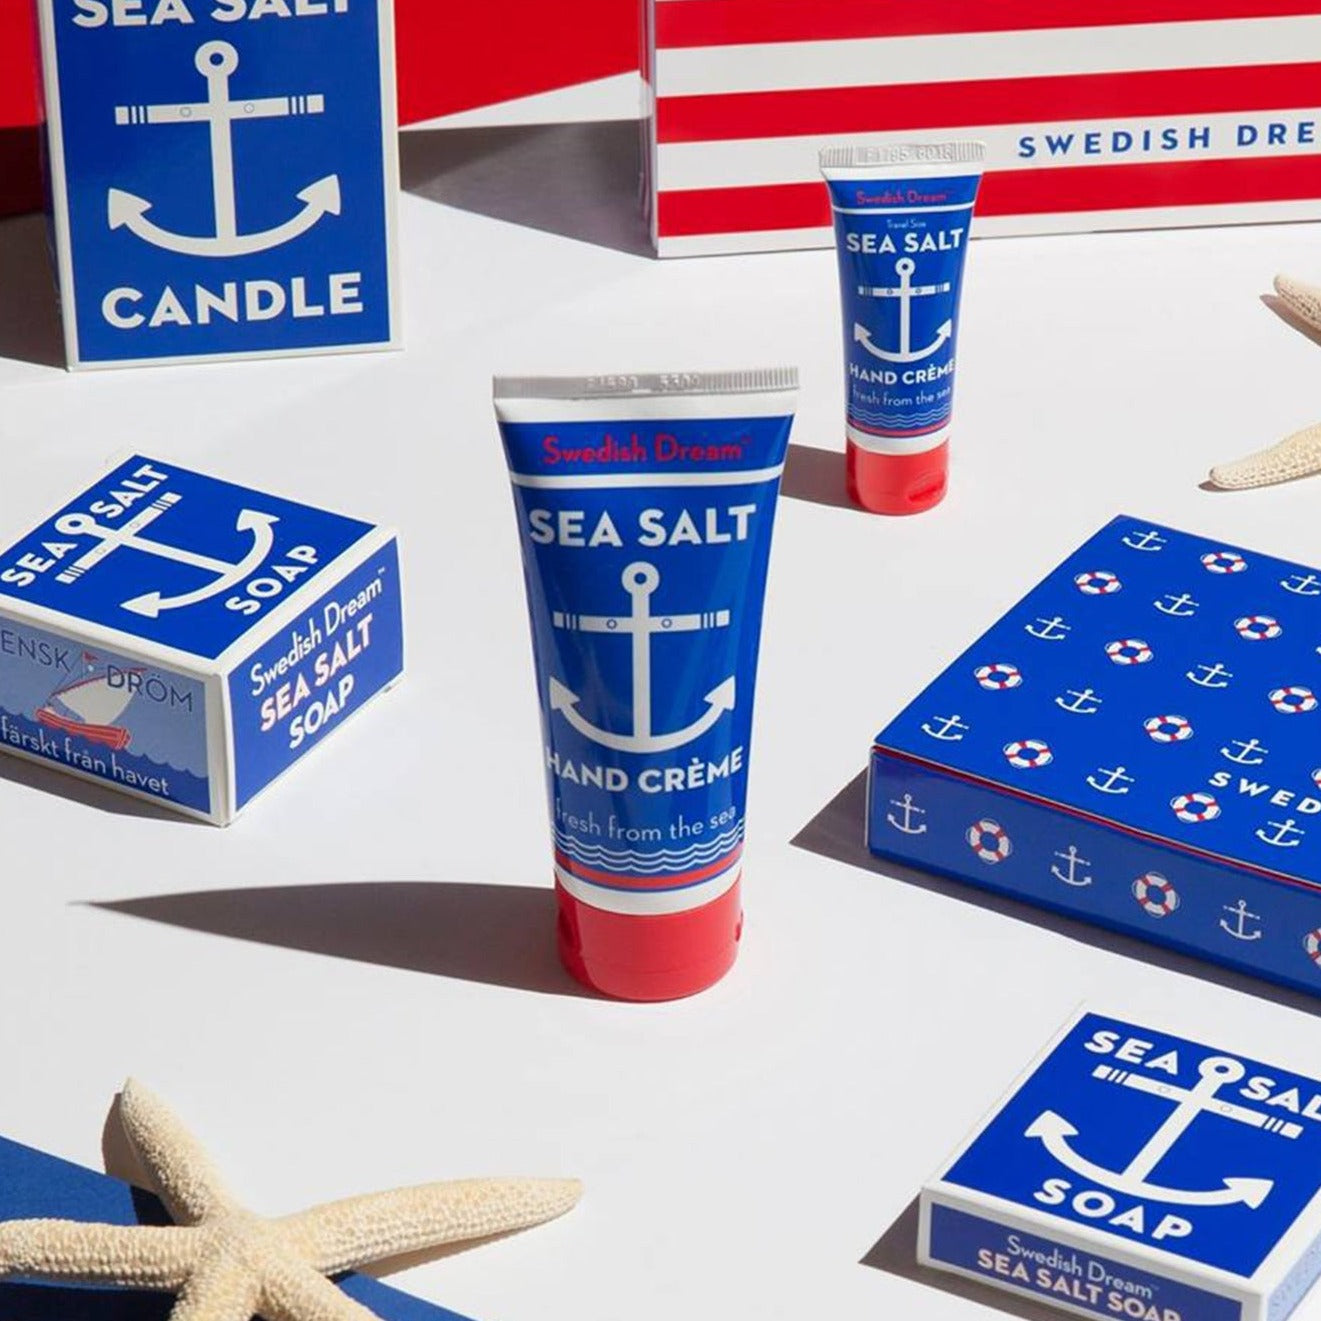 Kalastyle Sea Salt Travel Hand Creme